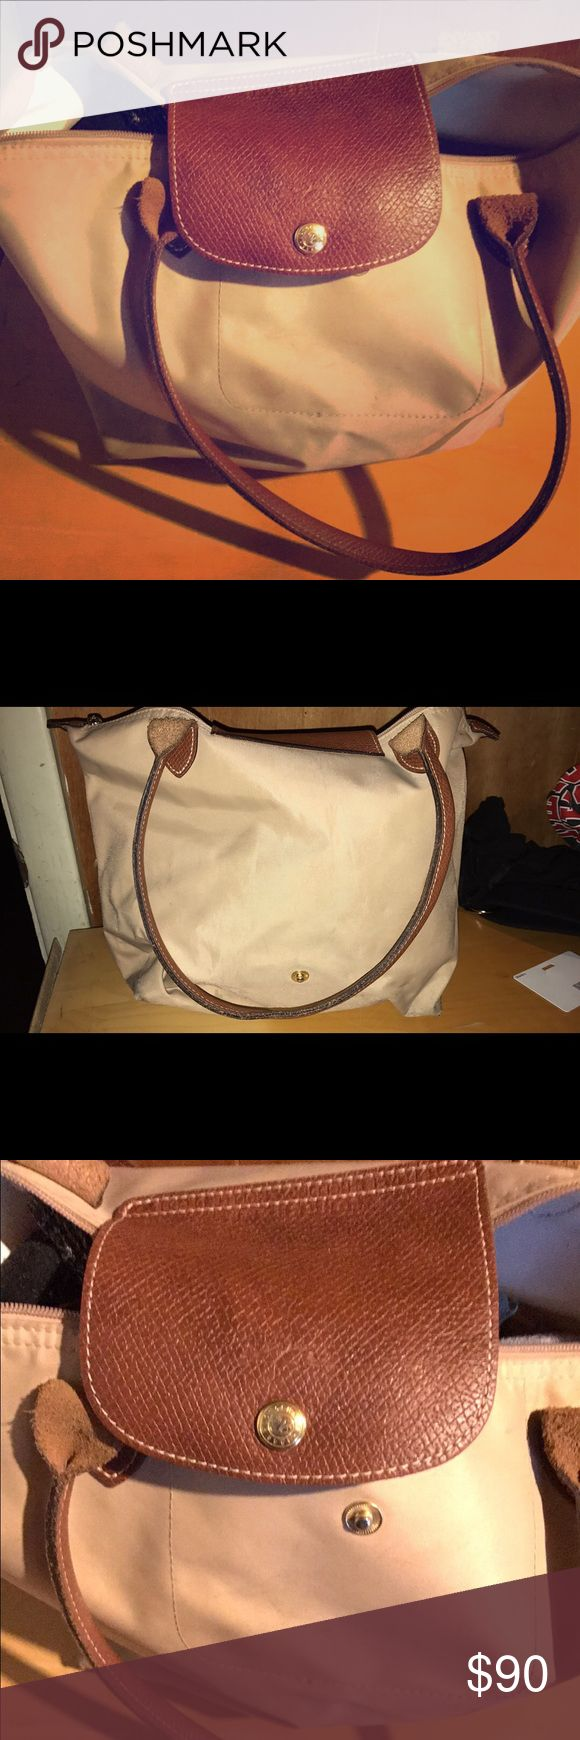 Authentic long champ bag. Cream and tan Cream and tan Long Champ bag. No trades. Authentic. Love condition. Signs of wear. Handles are intact and good condition. Obo. Longchamp Bags Shoulder Bags